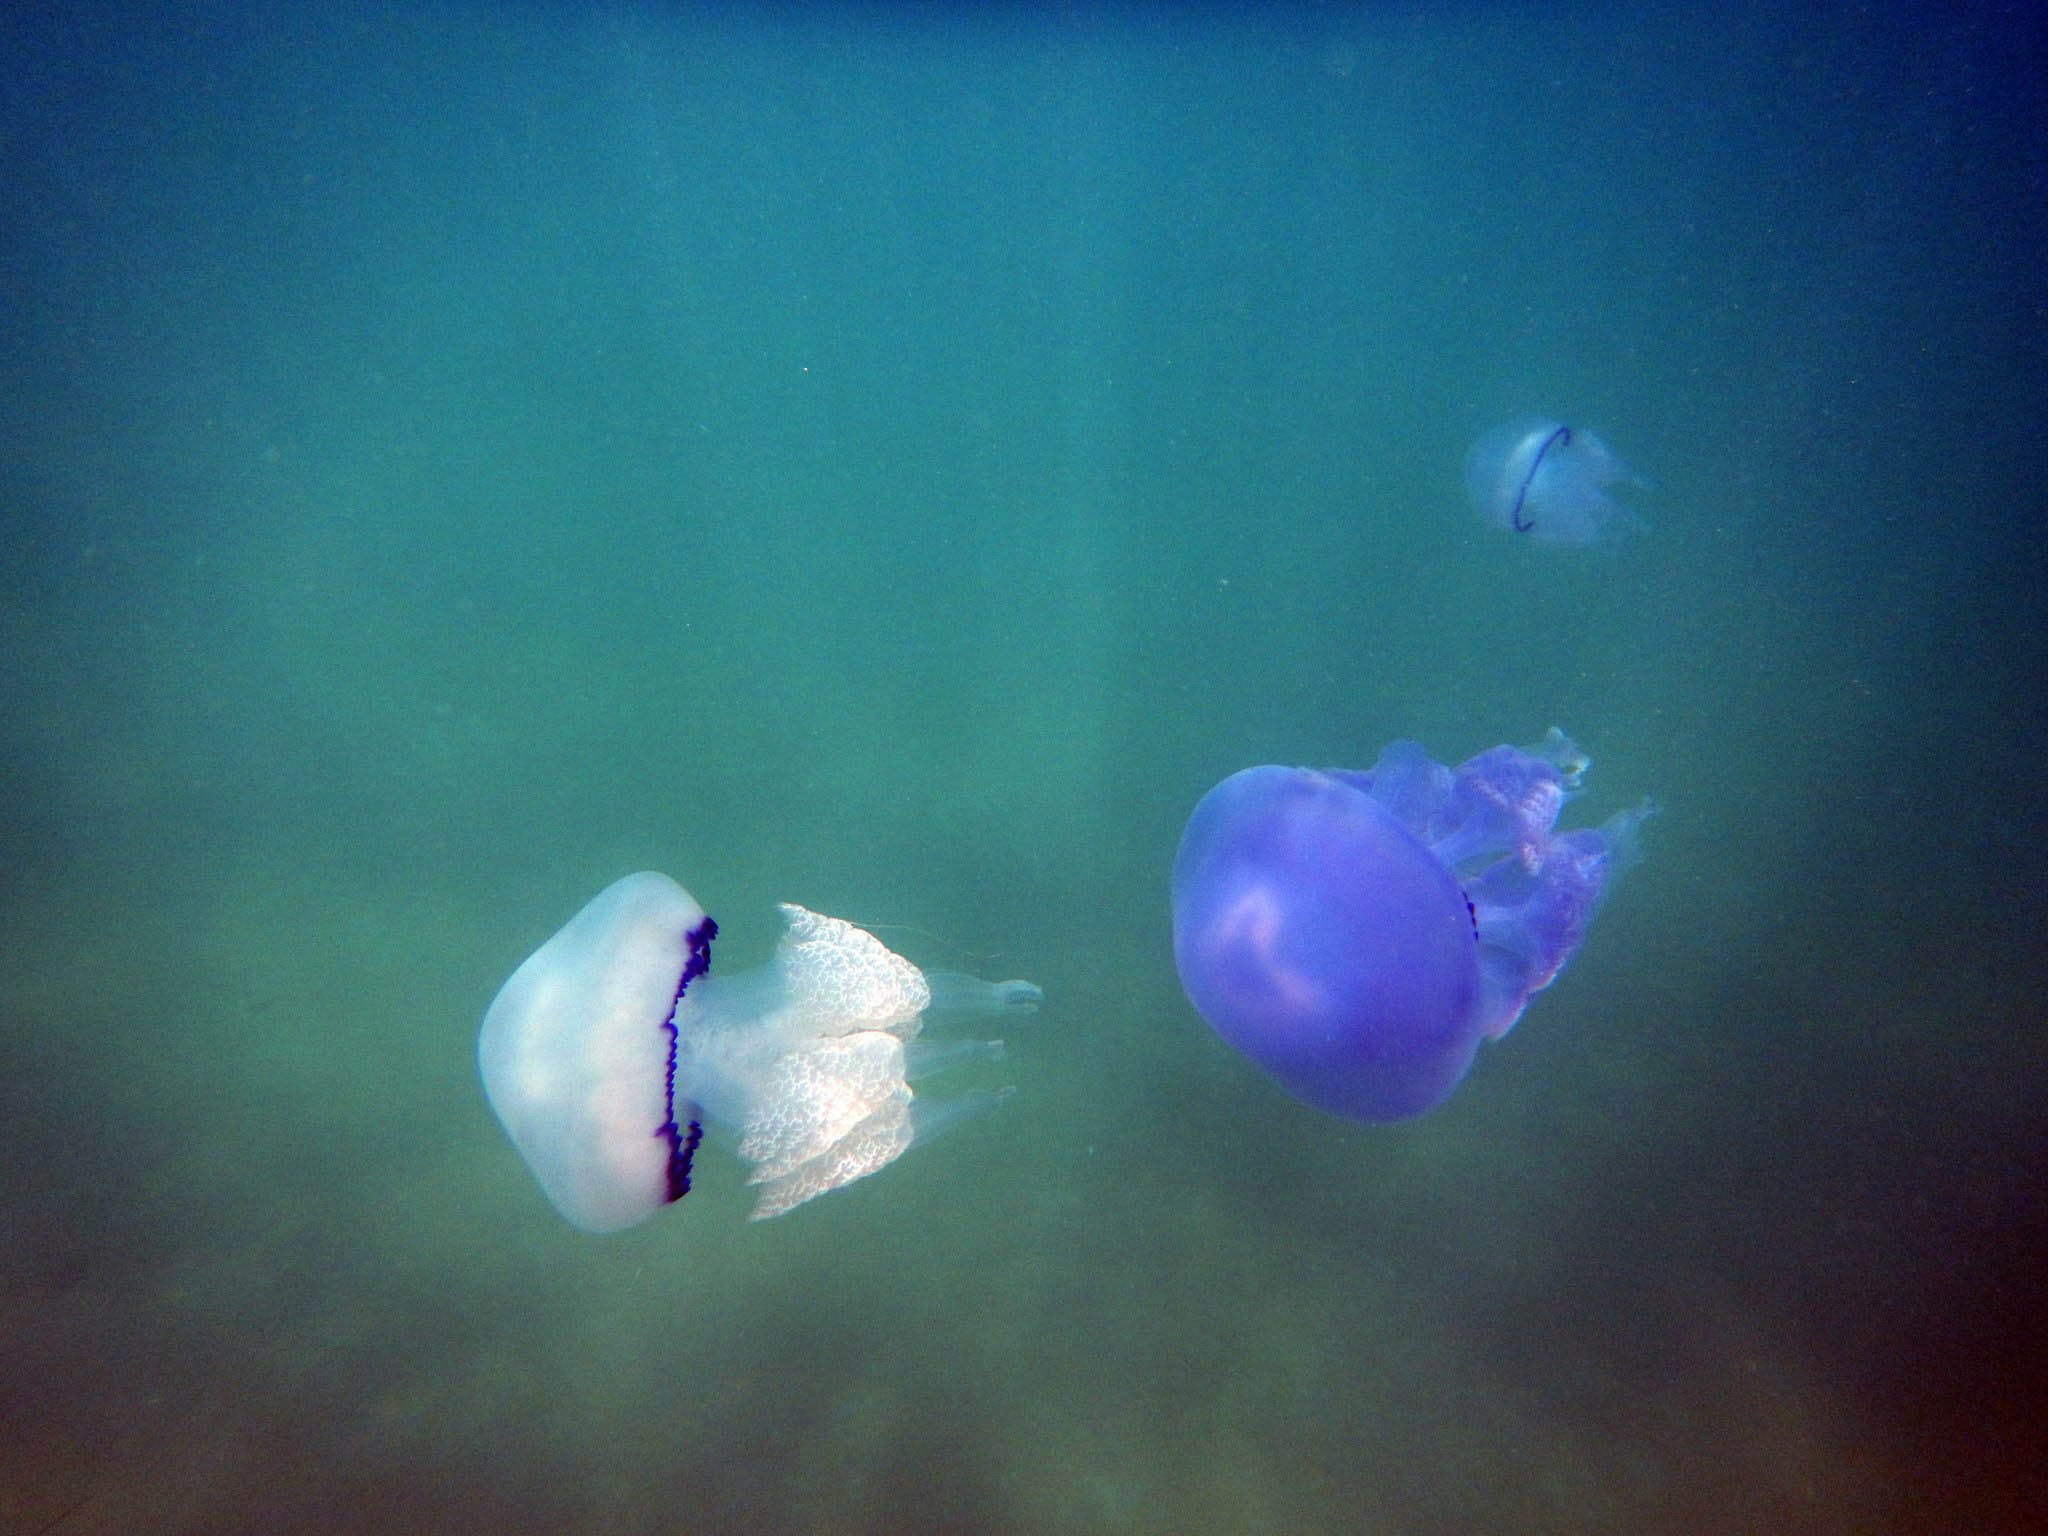 If you can't beat 'em, eat 'em: As jellyfish swarm the seas off